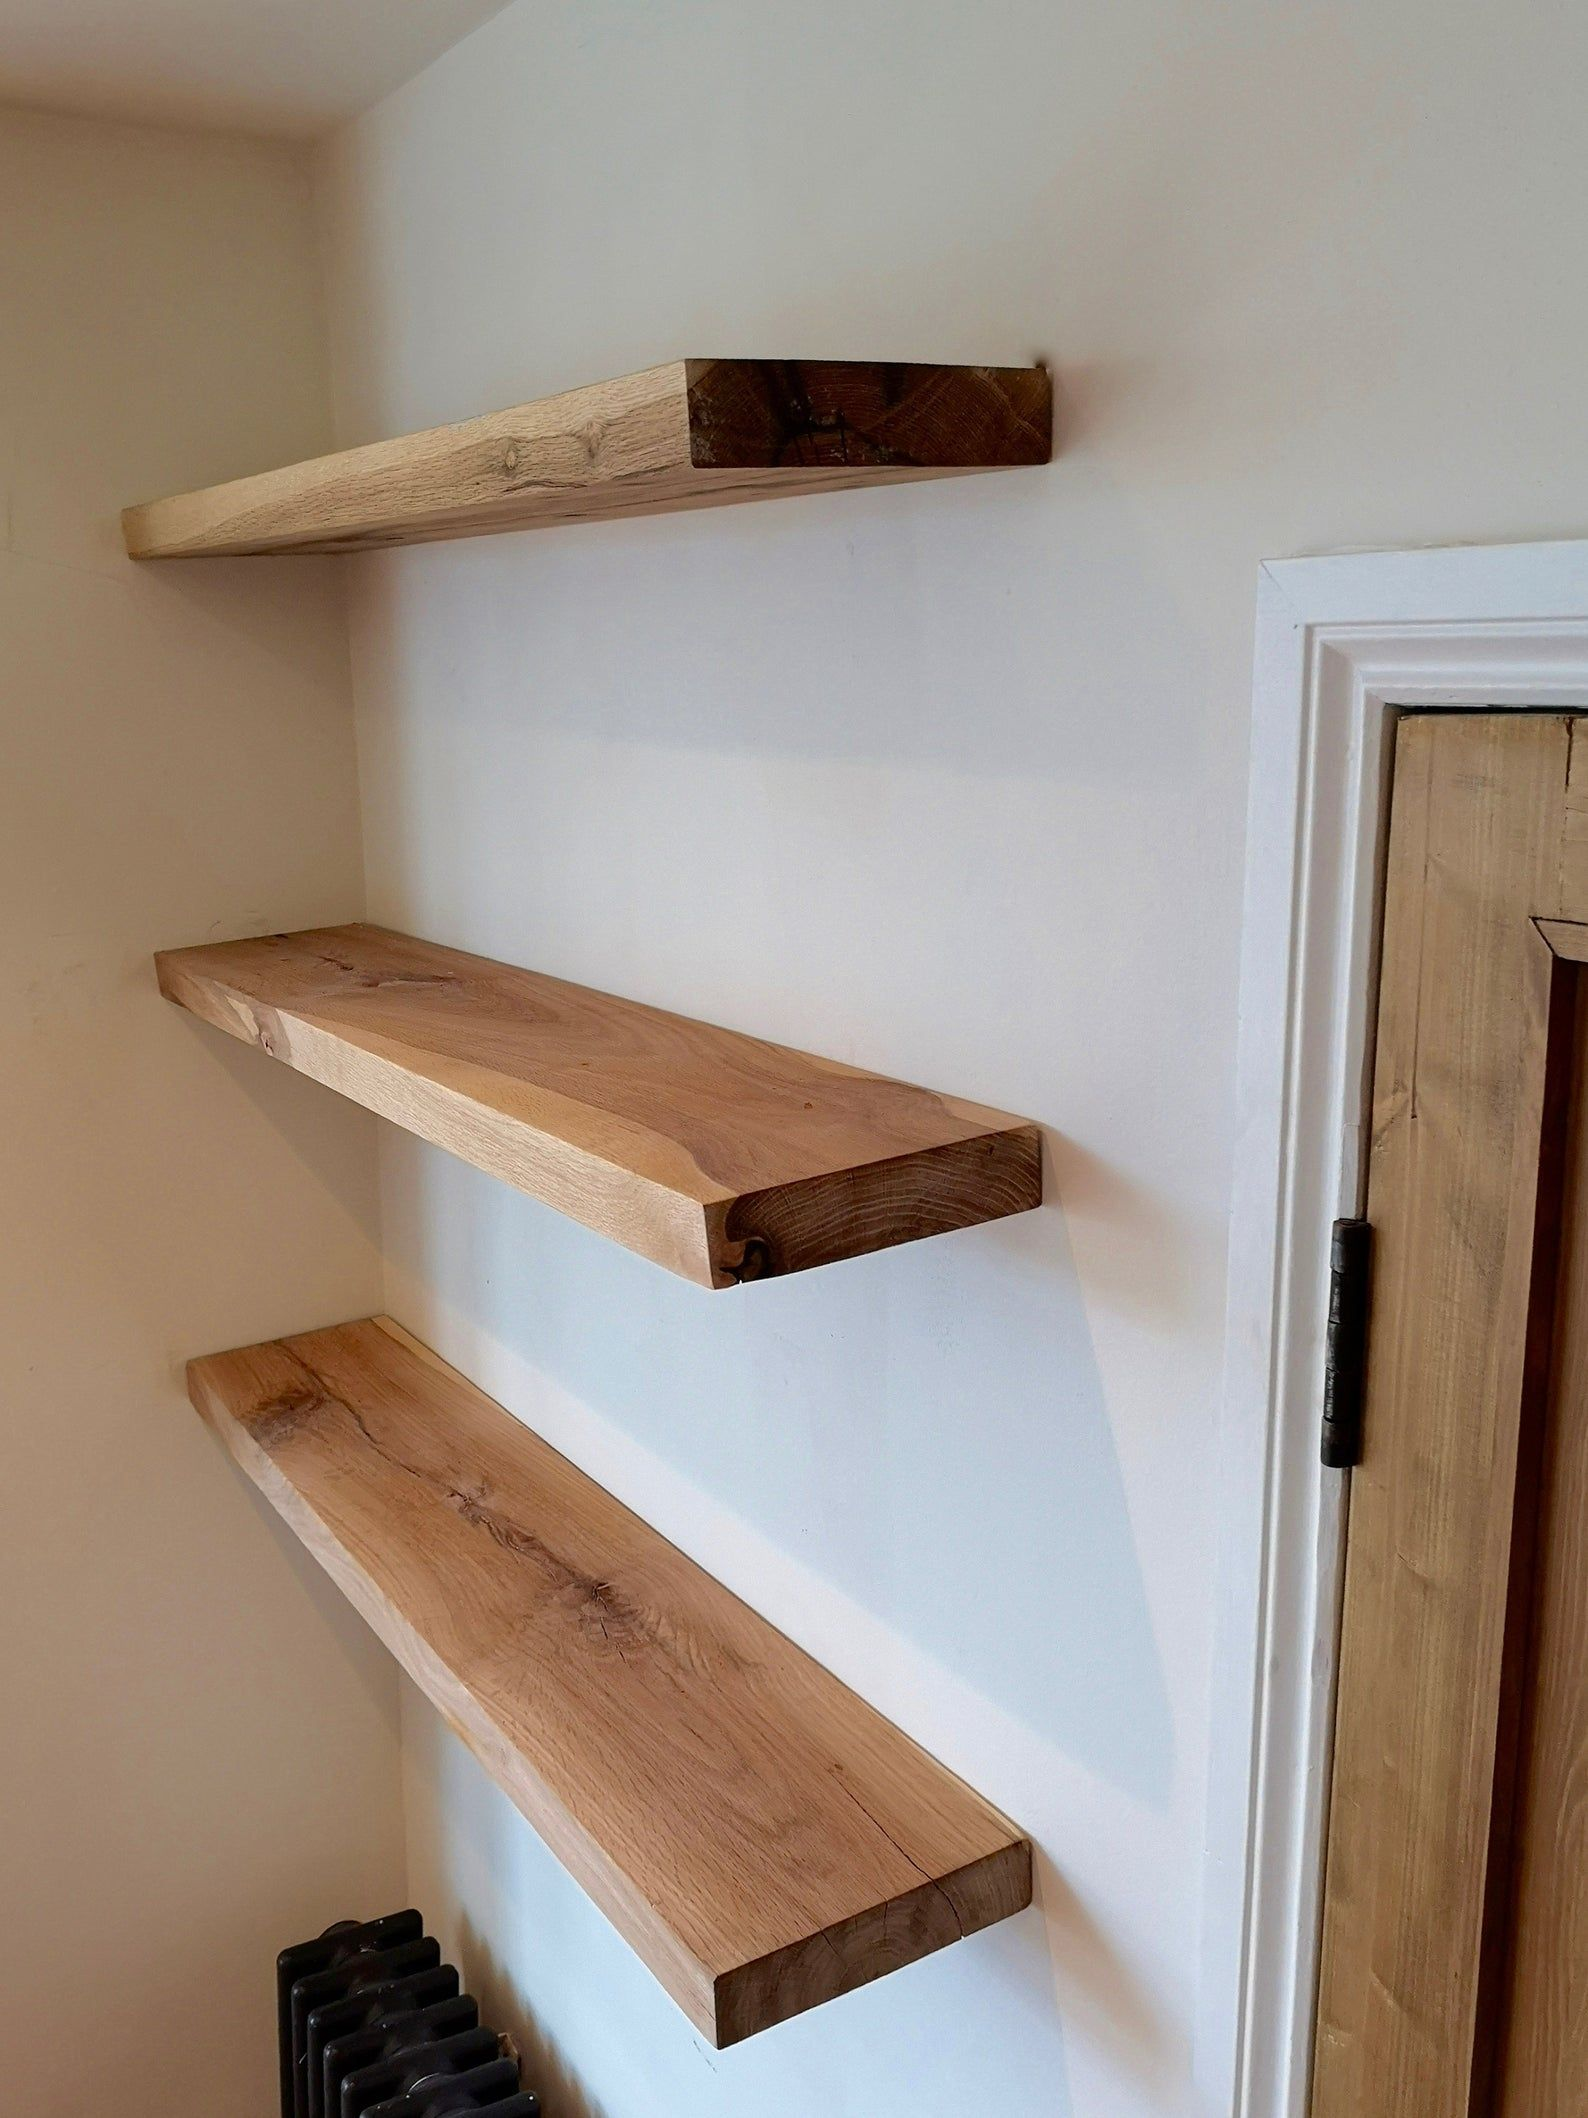 Oak Floating Shelves Solid Wood Bespoke Chunky Concealed Brackets Quality Storage Wood Oak Floating Shelves Wood Floating Shelves Floating Shelves Diy